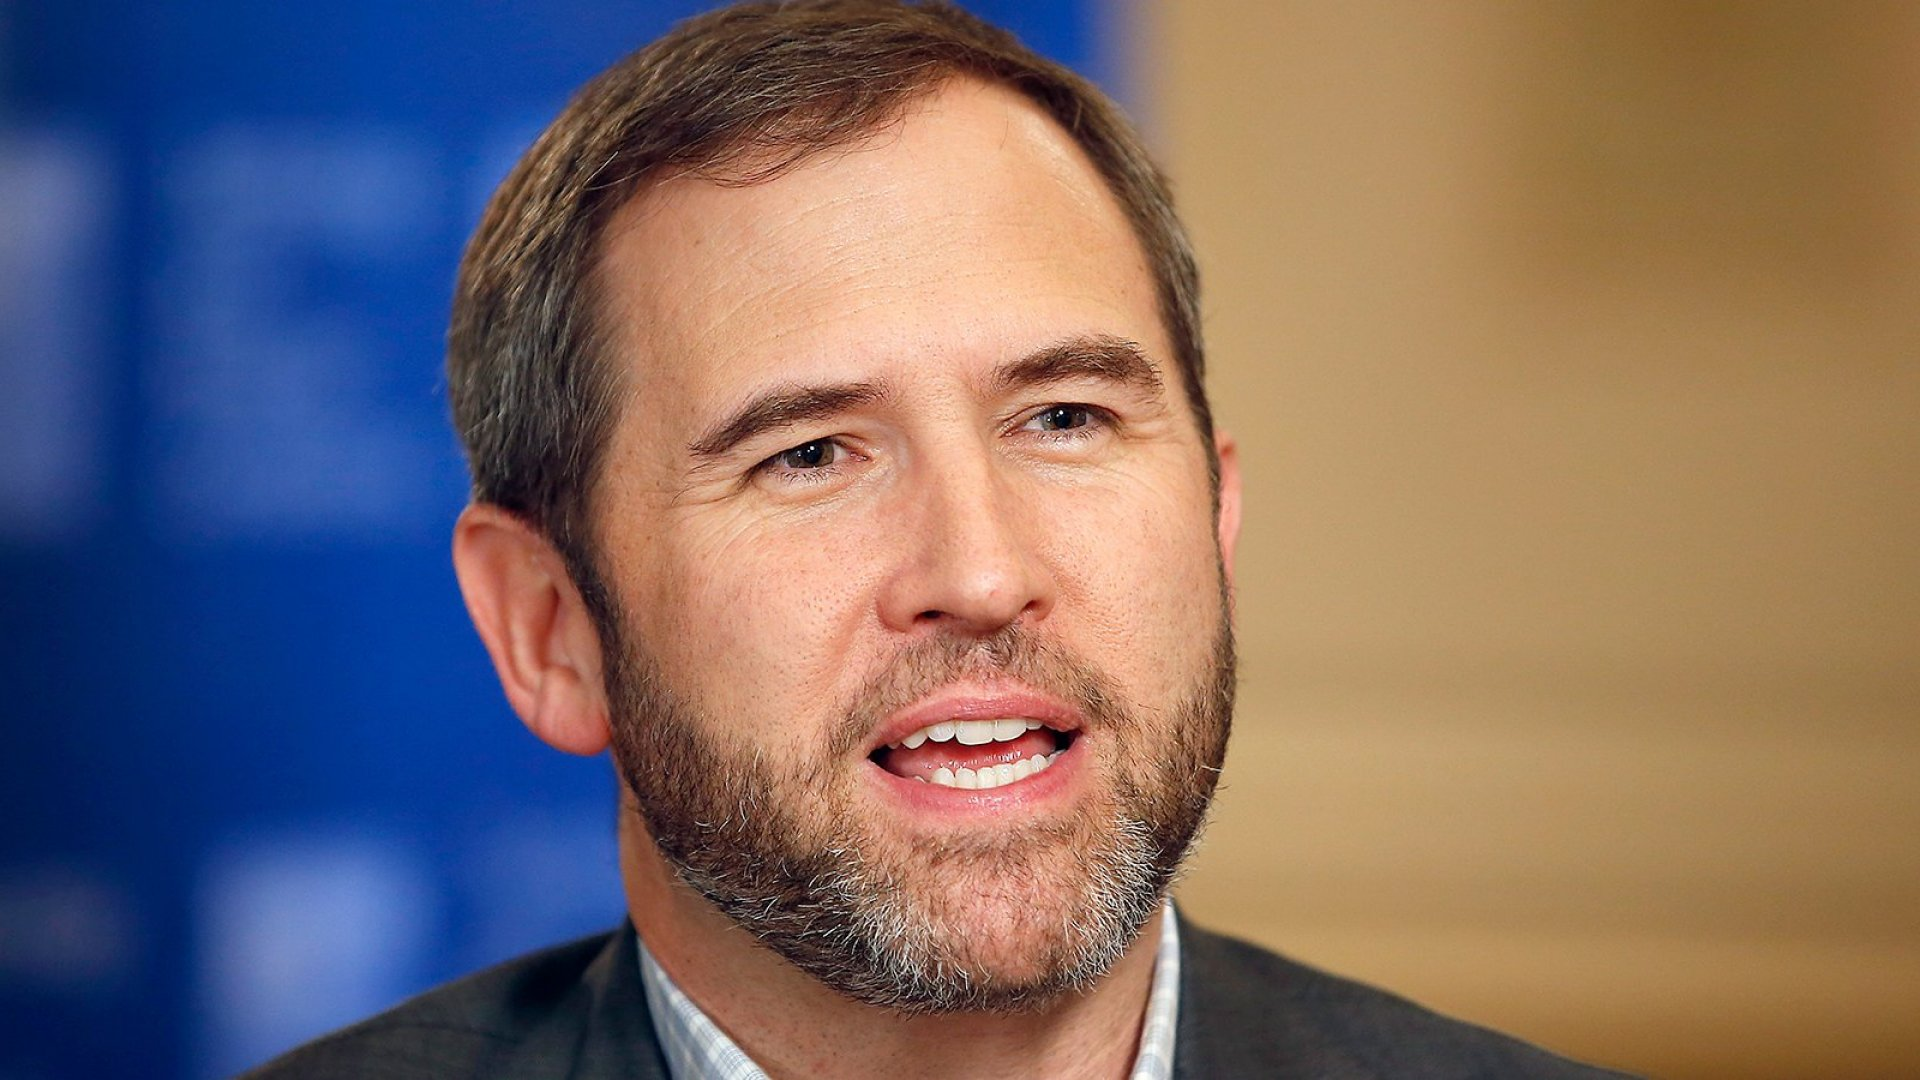 Brad Garlinghouse, chief executive officer Ripple Labs Inc.